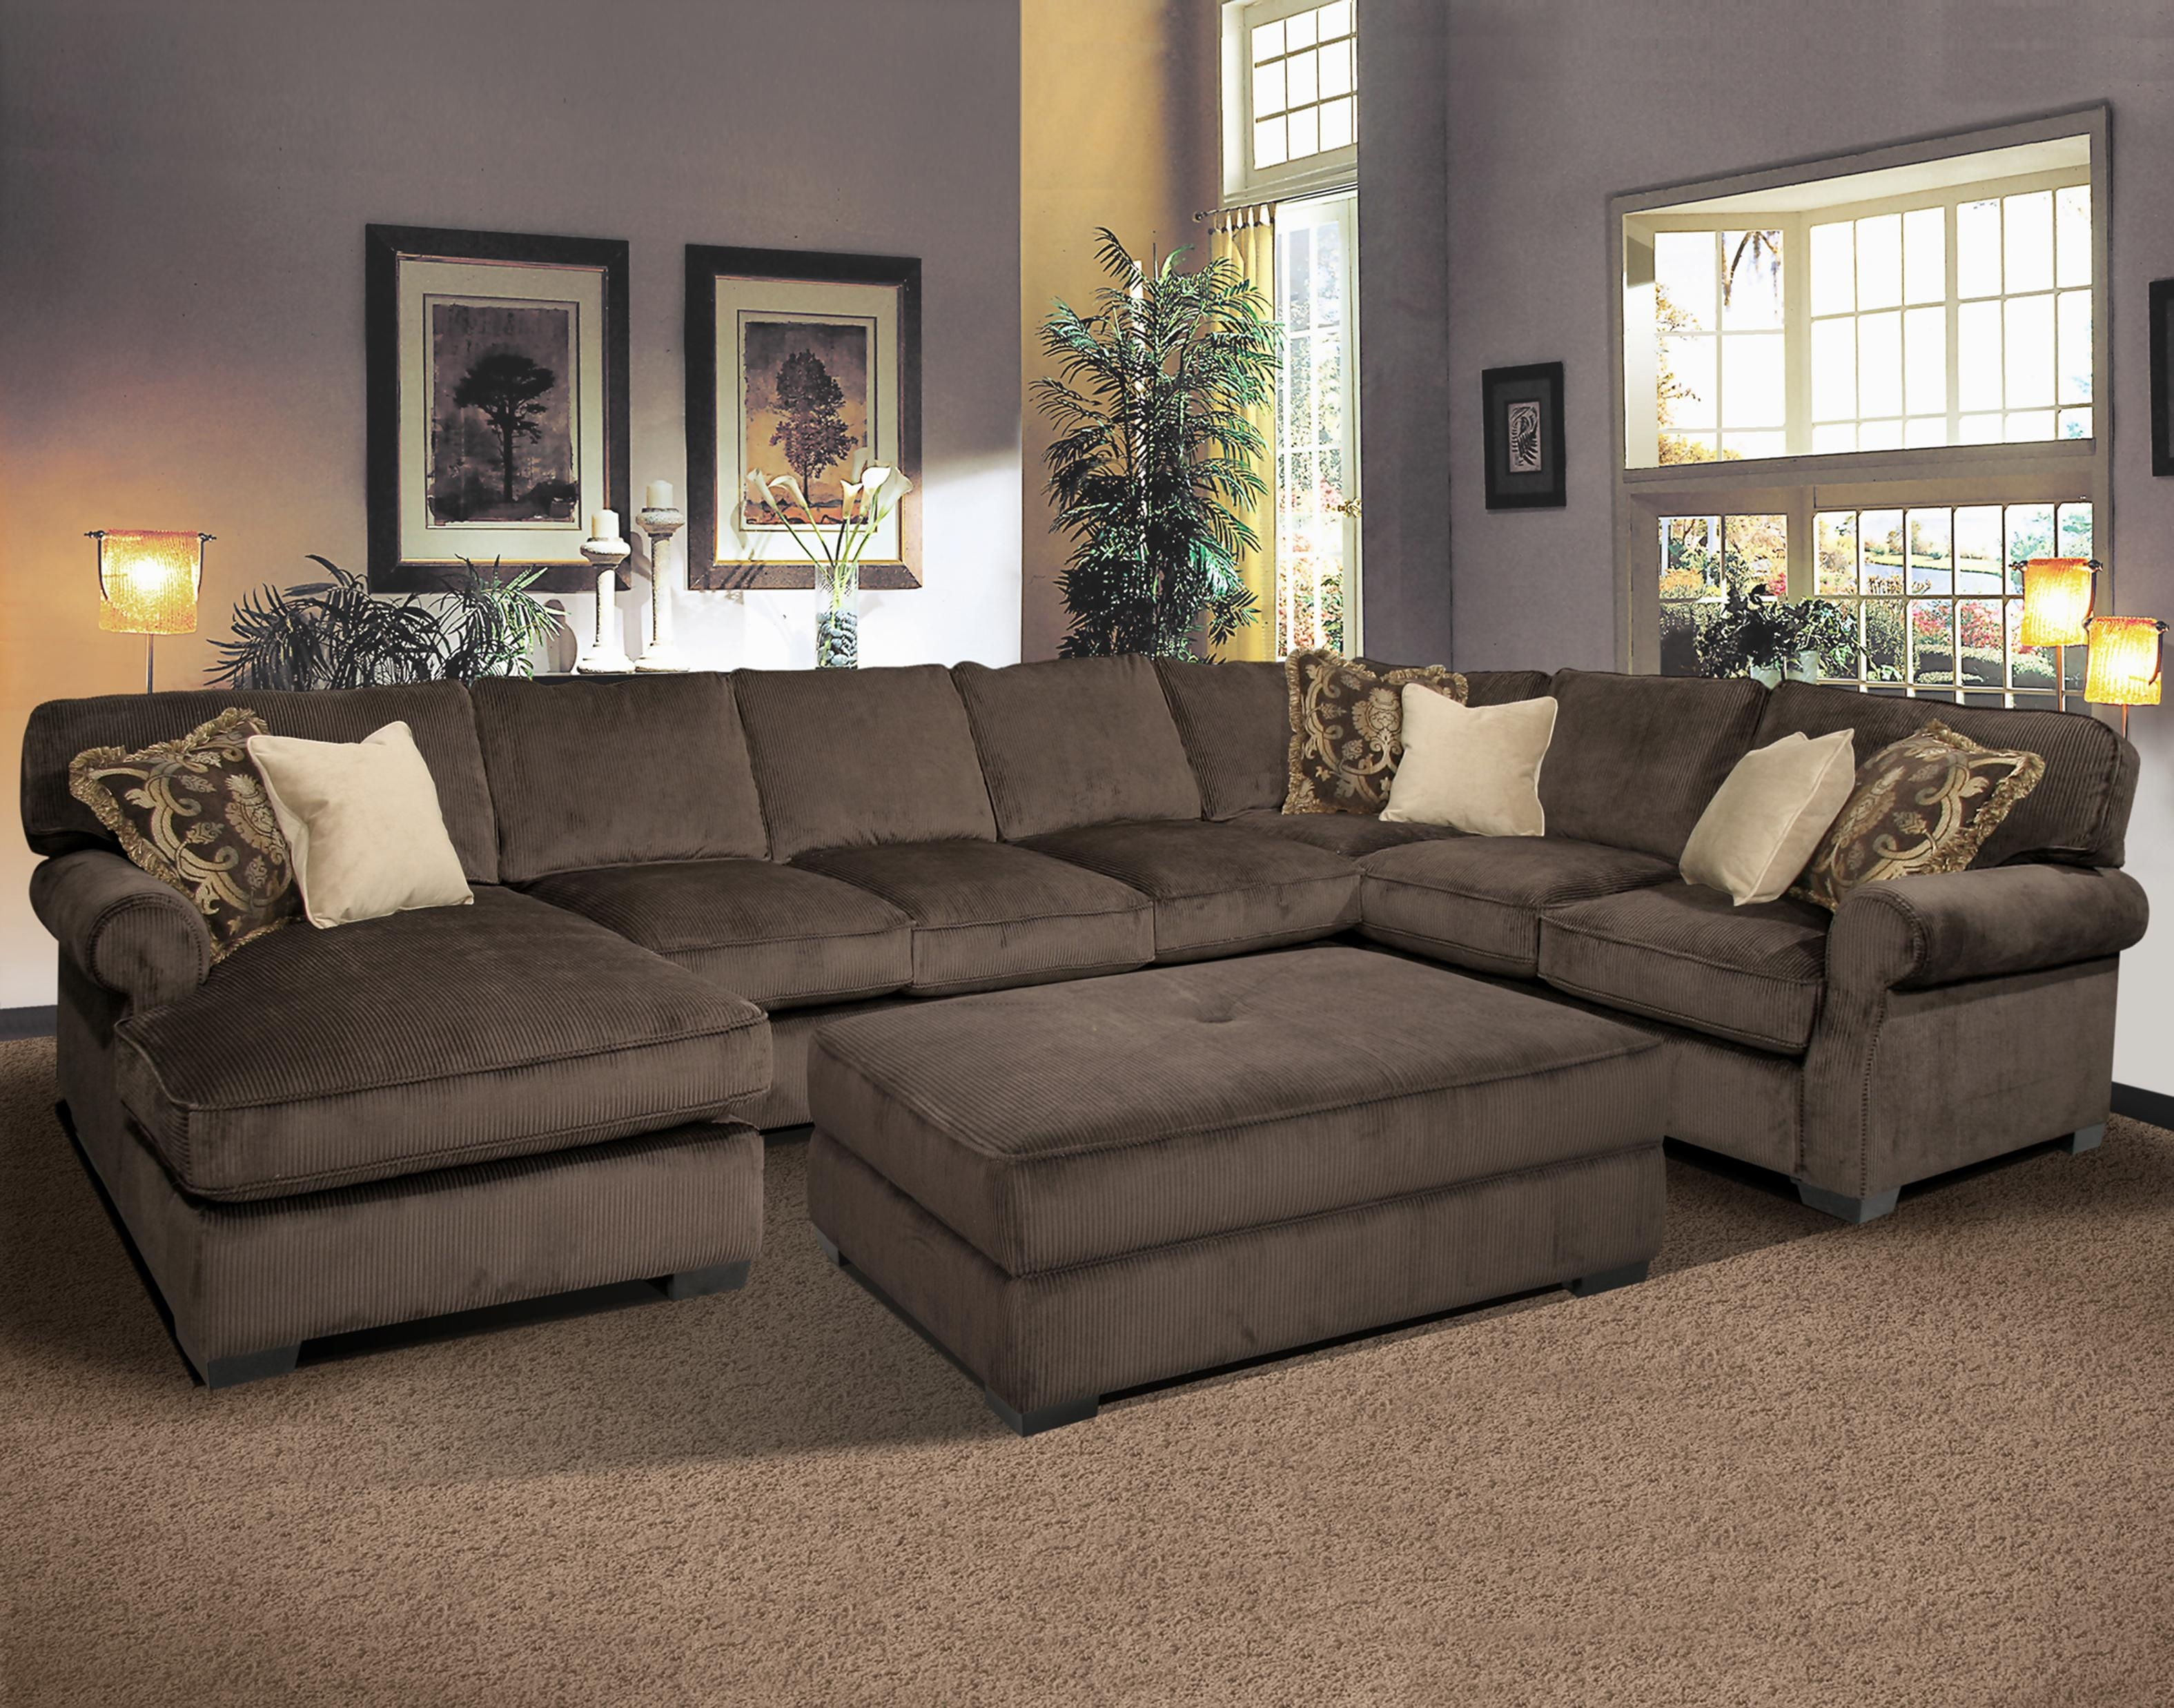 Furniture: Cheap Sectional Couches | Discount Sofas | Affordable Sofas Intended For Cheap Sectionals With Ottoman (Image 10 of 10)